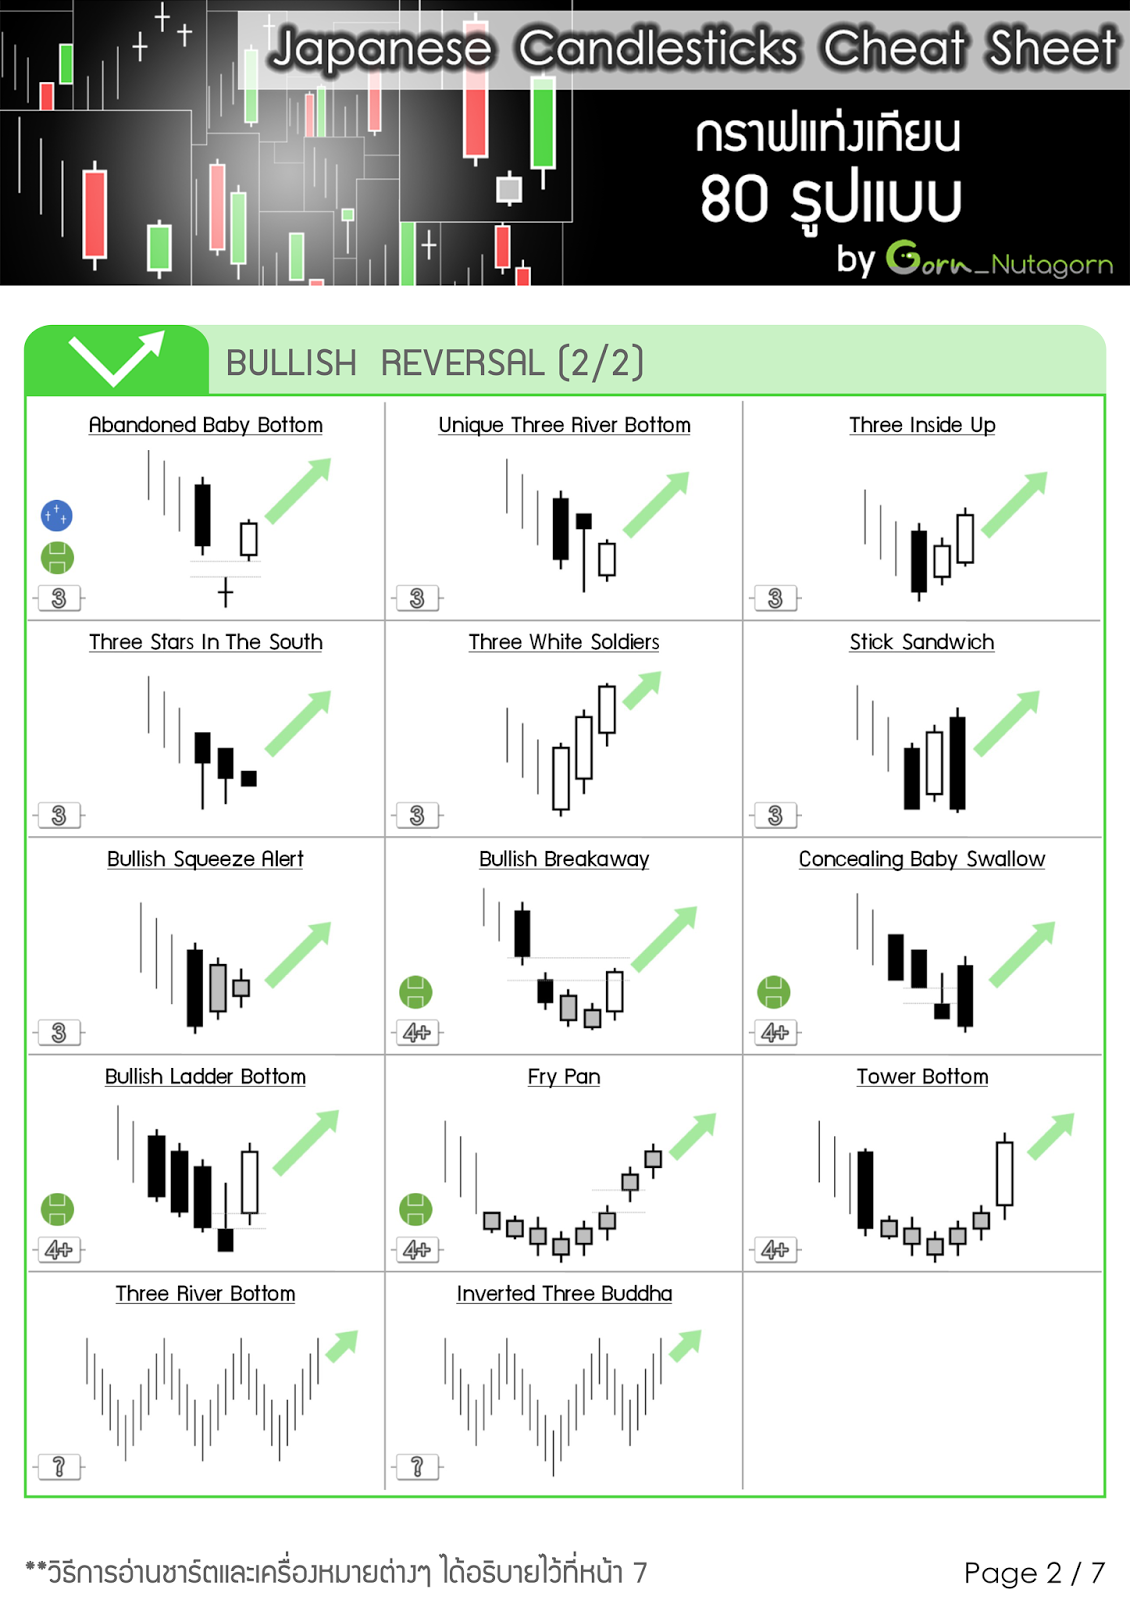 Japanese candlesticks cheat sheet